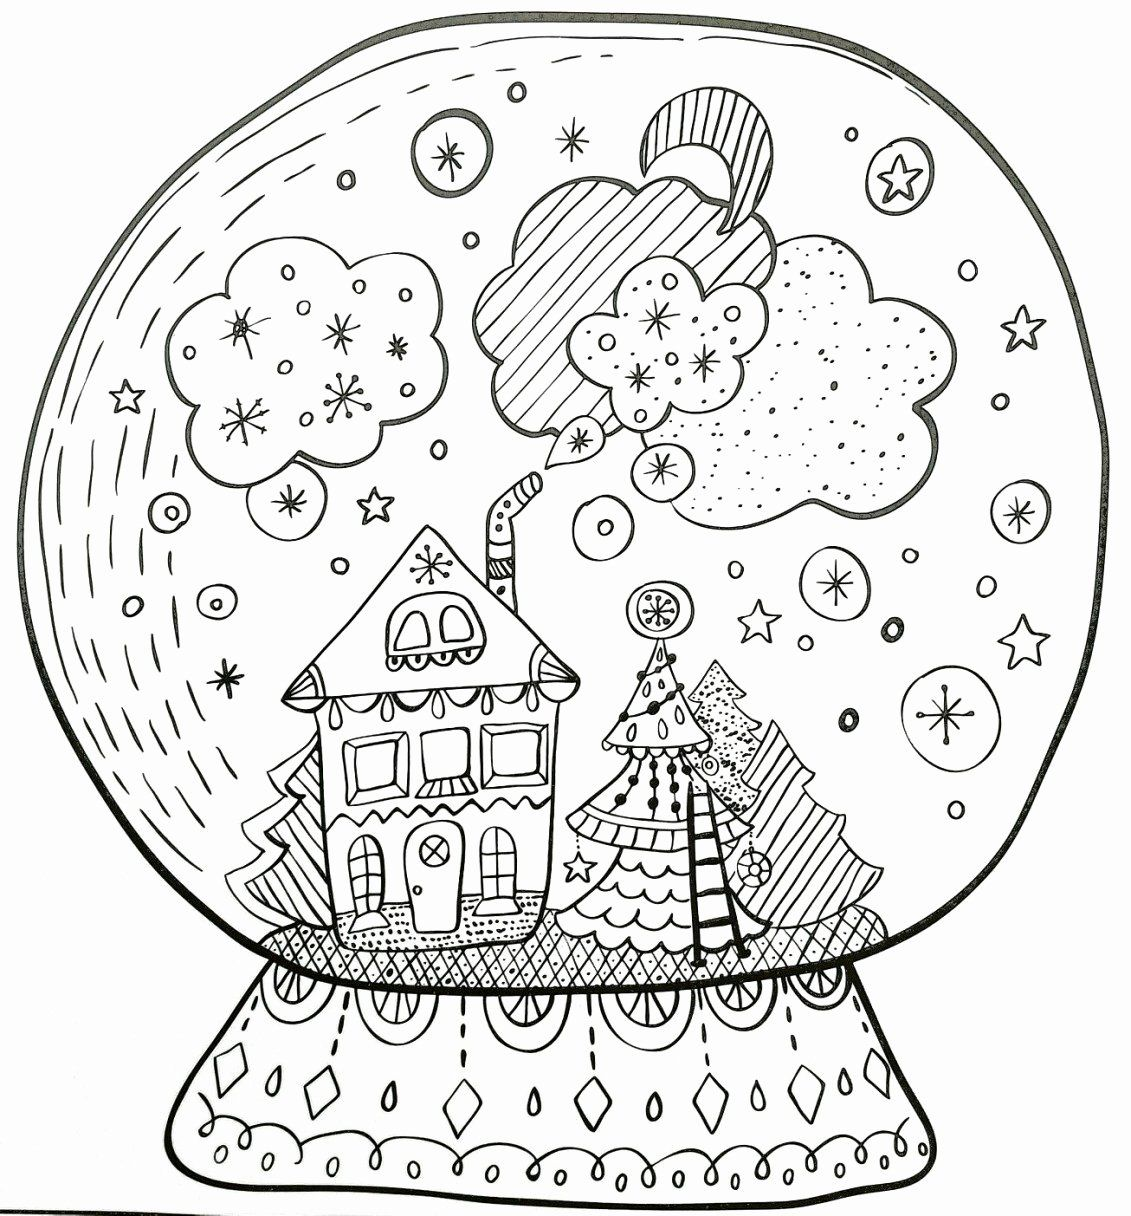 Forget Me Not Coloring Page Luxury Uk Snow Globe Coloring Page Daily1p In 2020 Christmas Coloring Books Coloring Pages Coloring Books